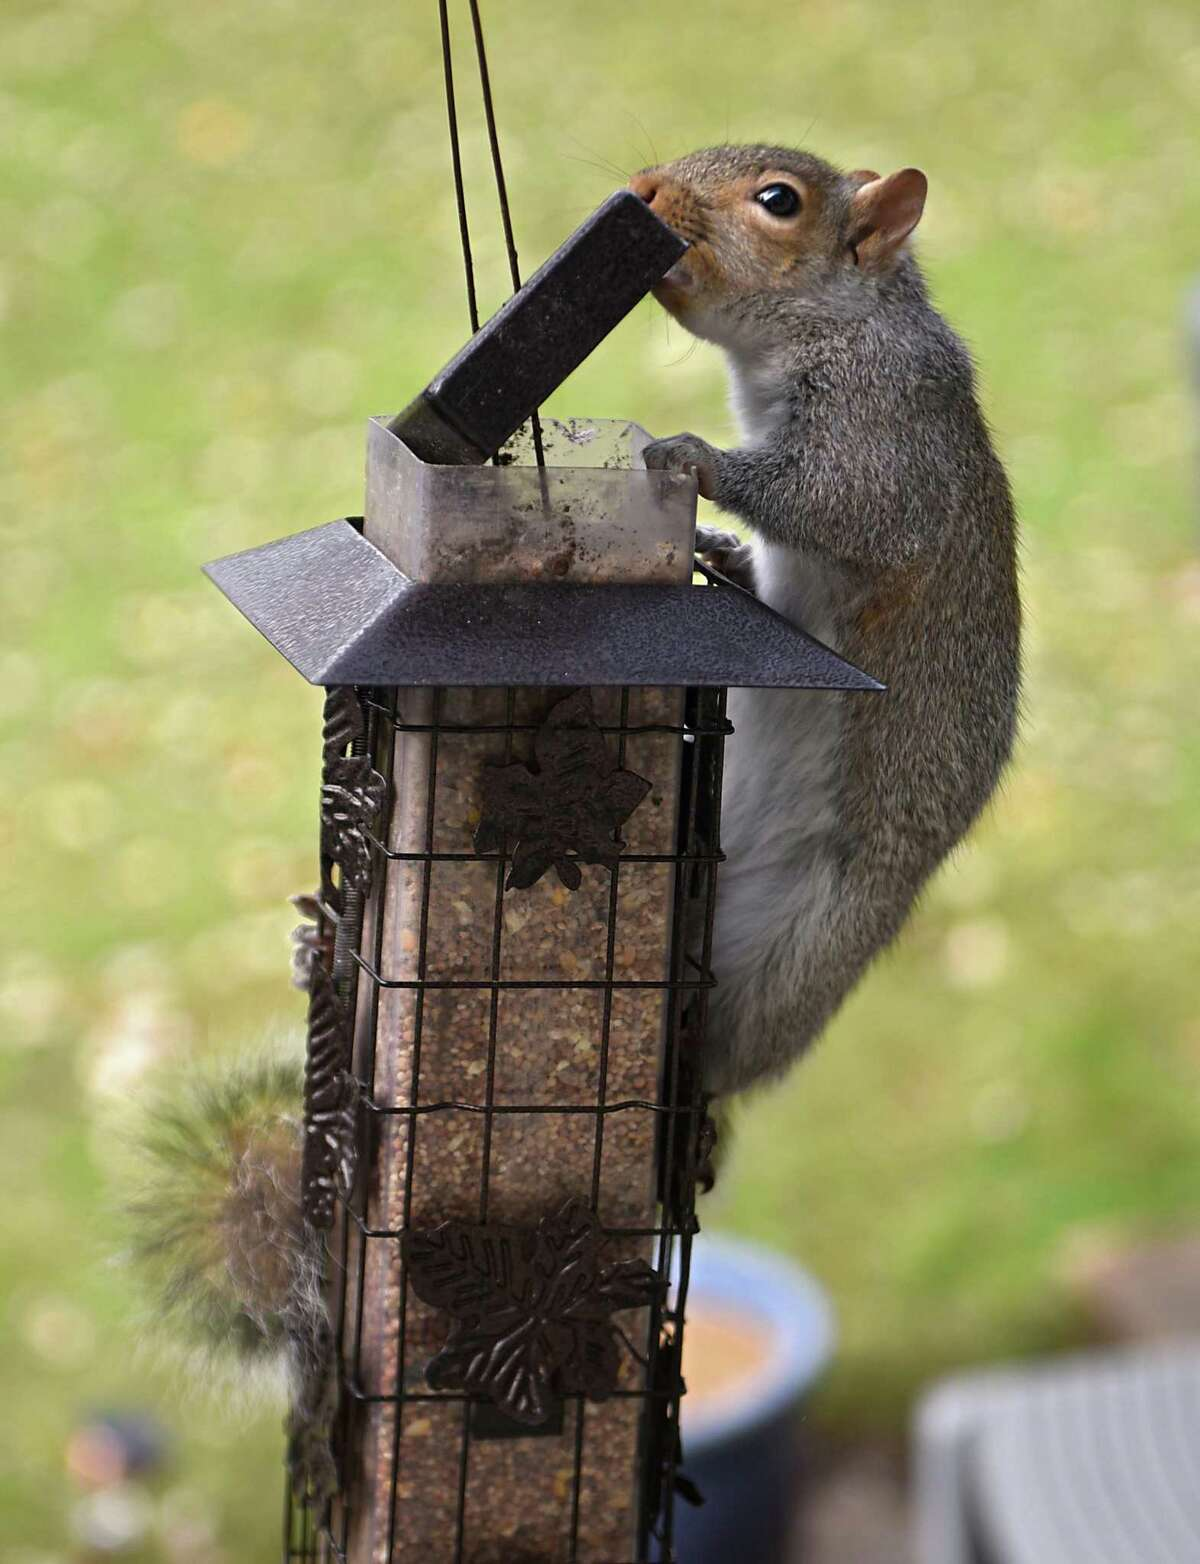 A squirrel invades a squirrel-proof bird feeder by lifting the top and helping himself to food